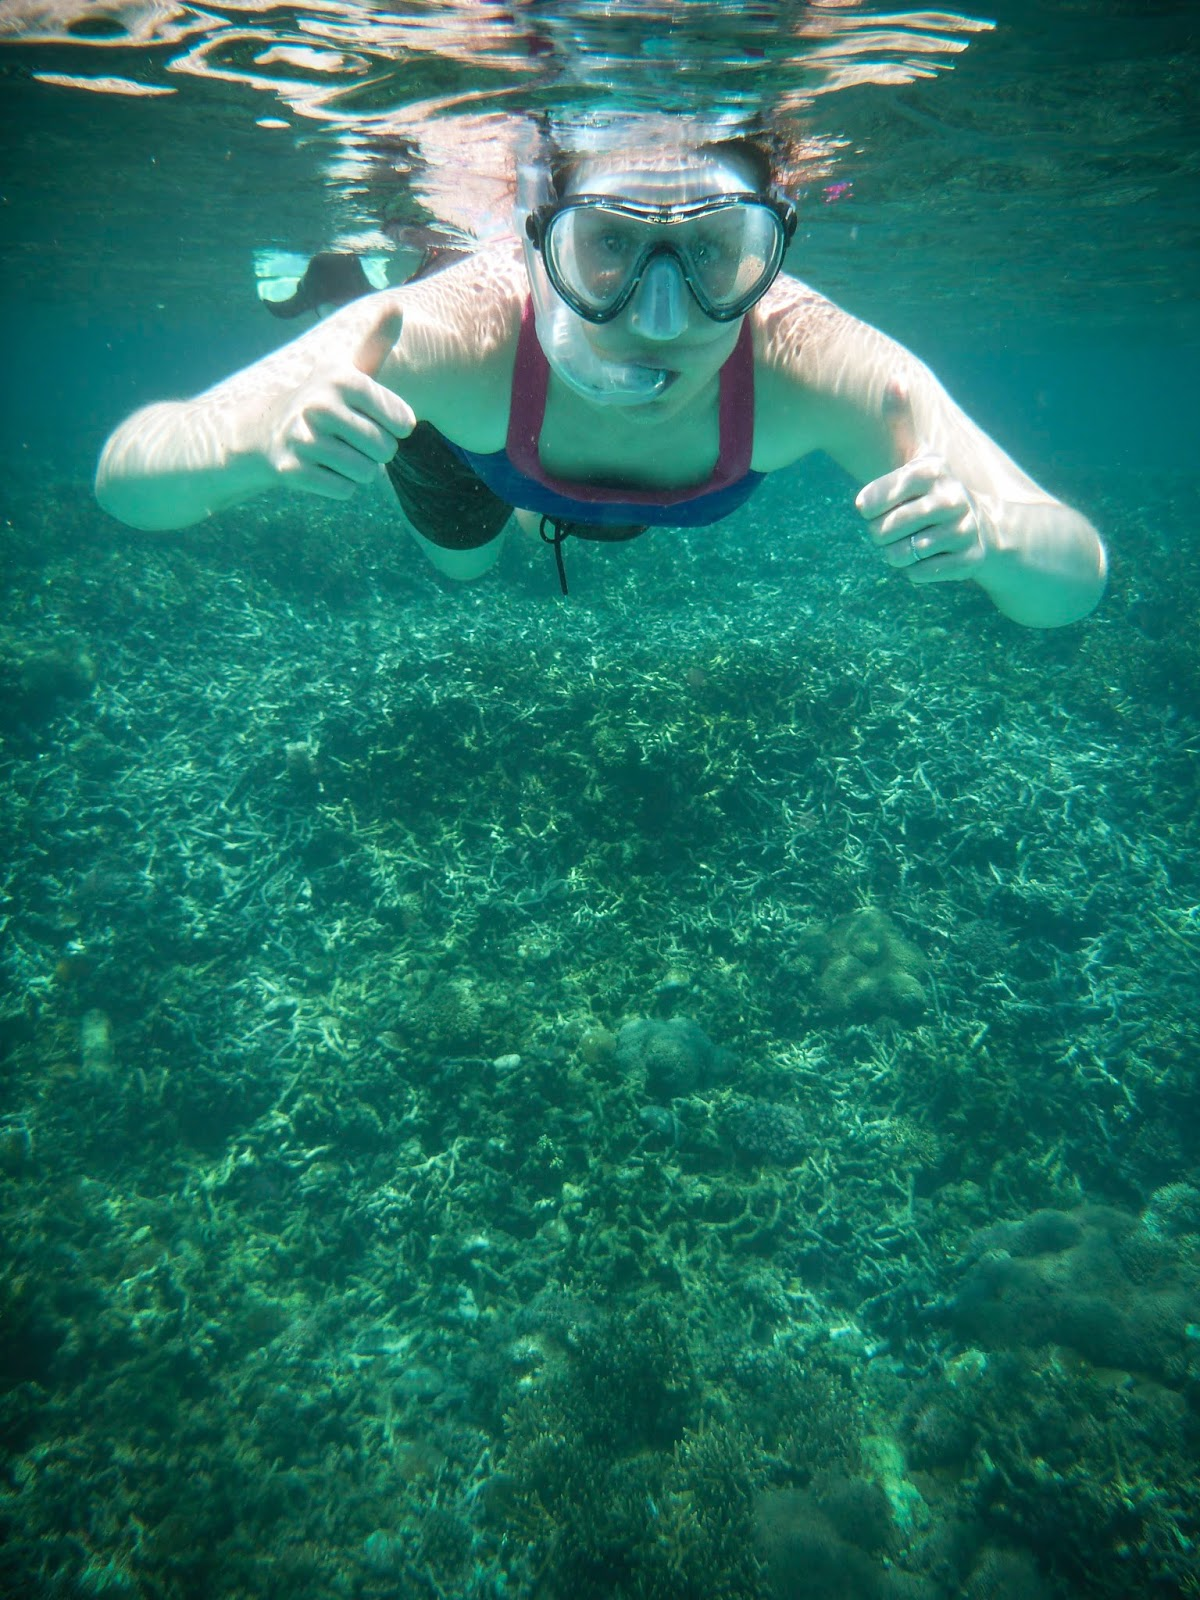 Luke laura gerunds in png or why i 39 m thankful for for Fish pedicure utah